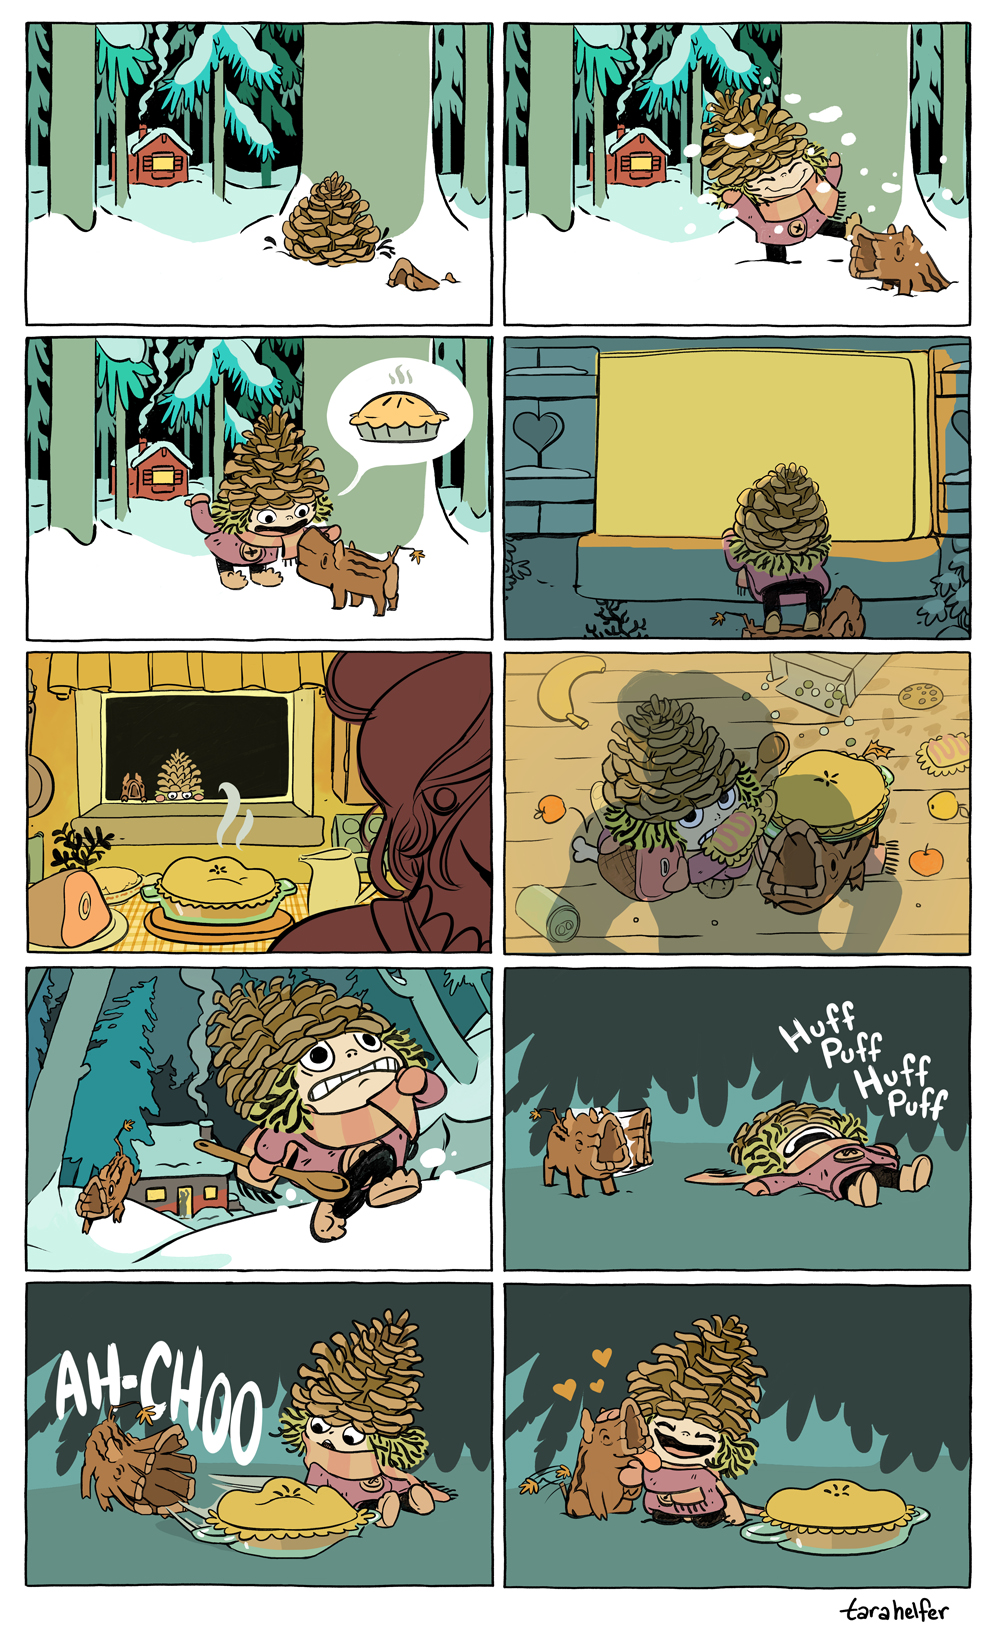 A short comic to chase away any late-winter blues. This was originally posted to twitter two panels at a time. Abbigale and her tree piglet friend Truffles are based off old holiday characters, particularly yule lads and trolls.